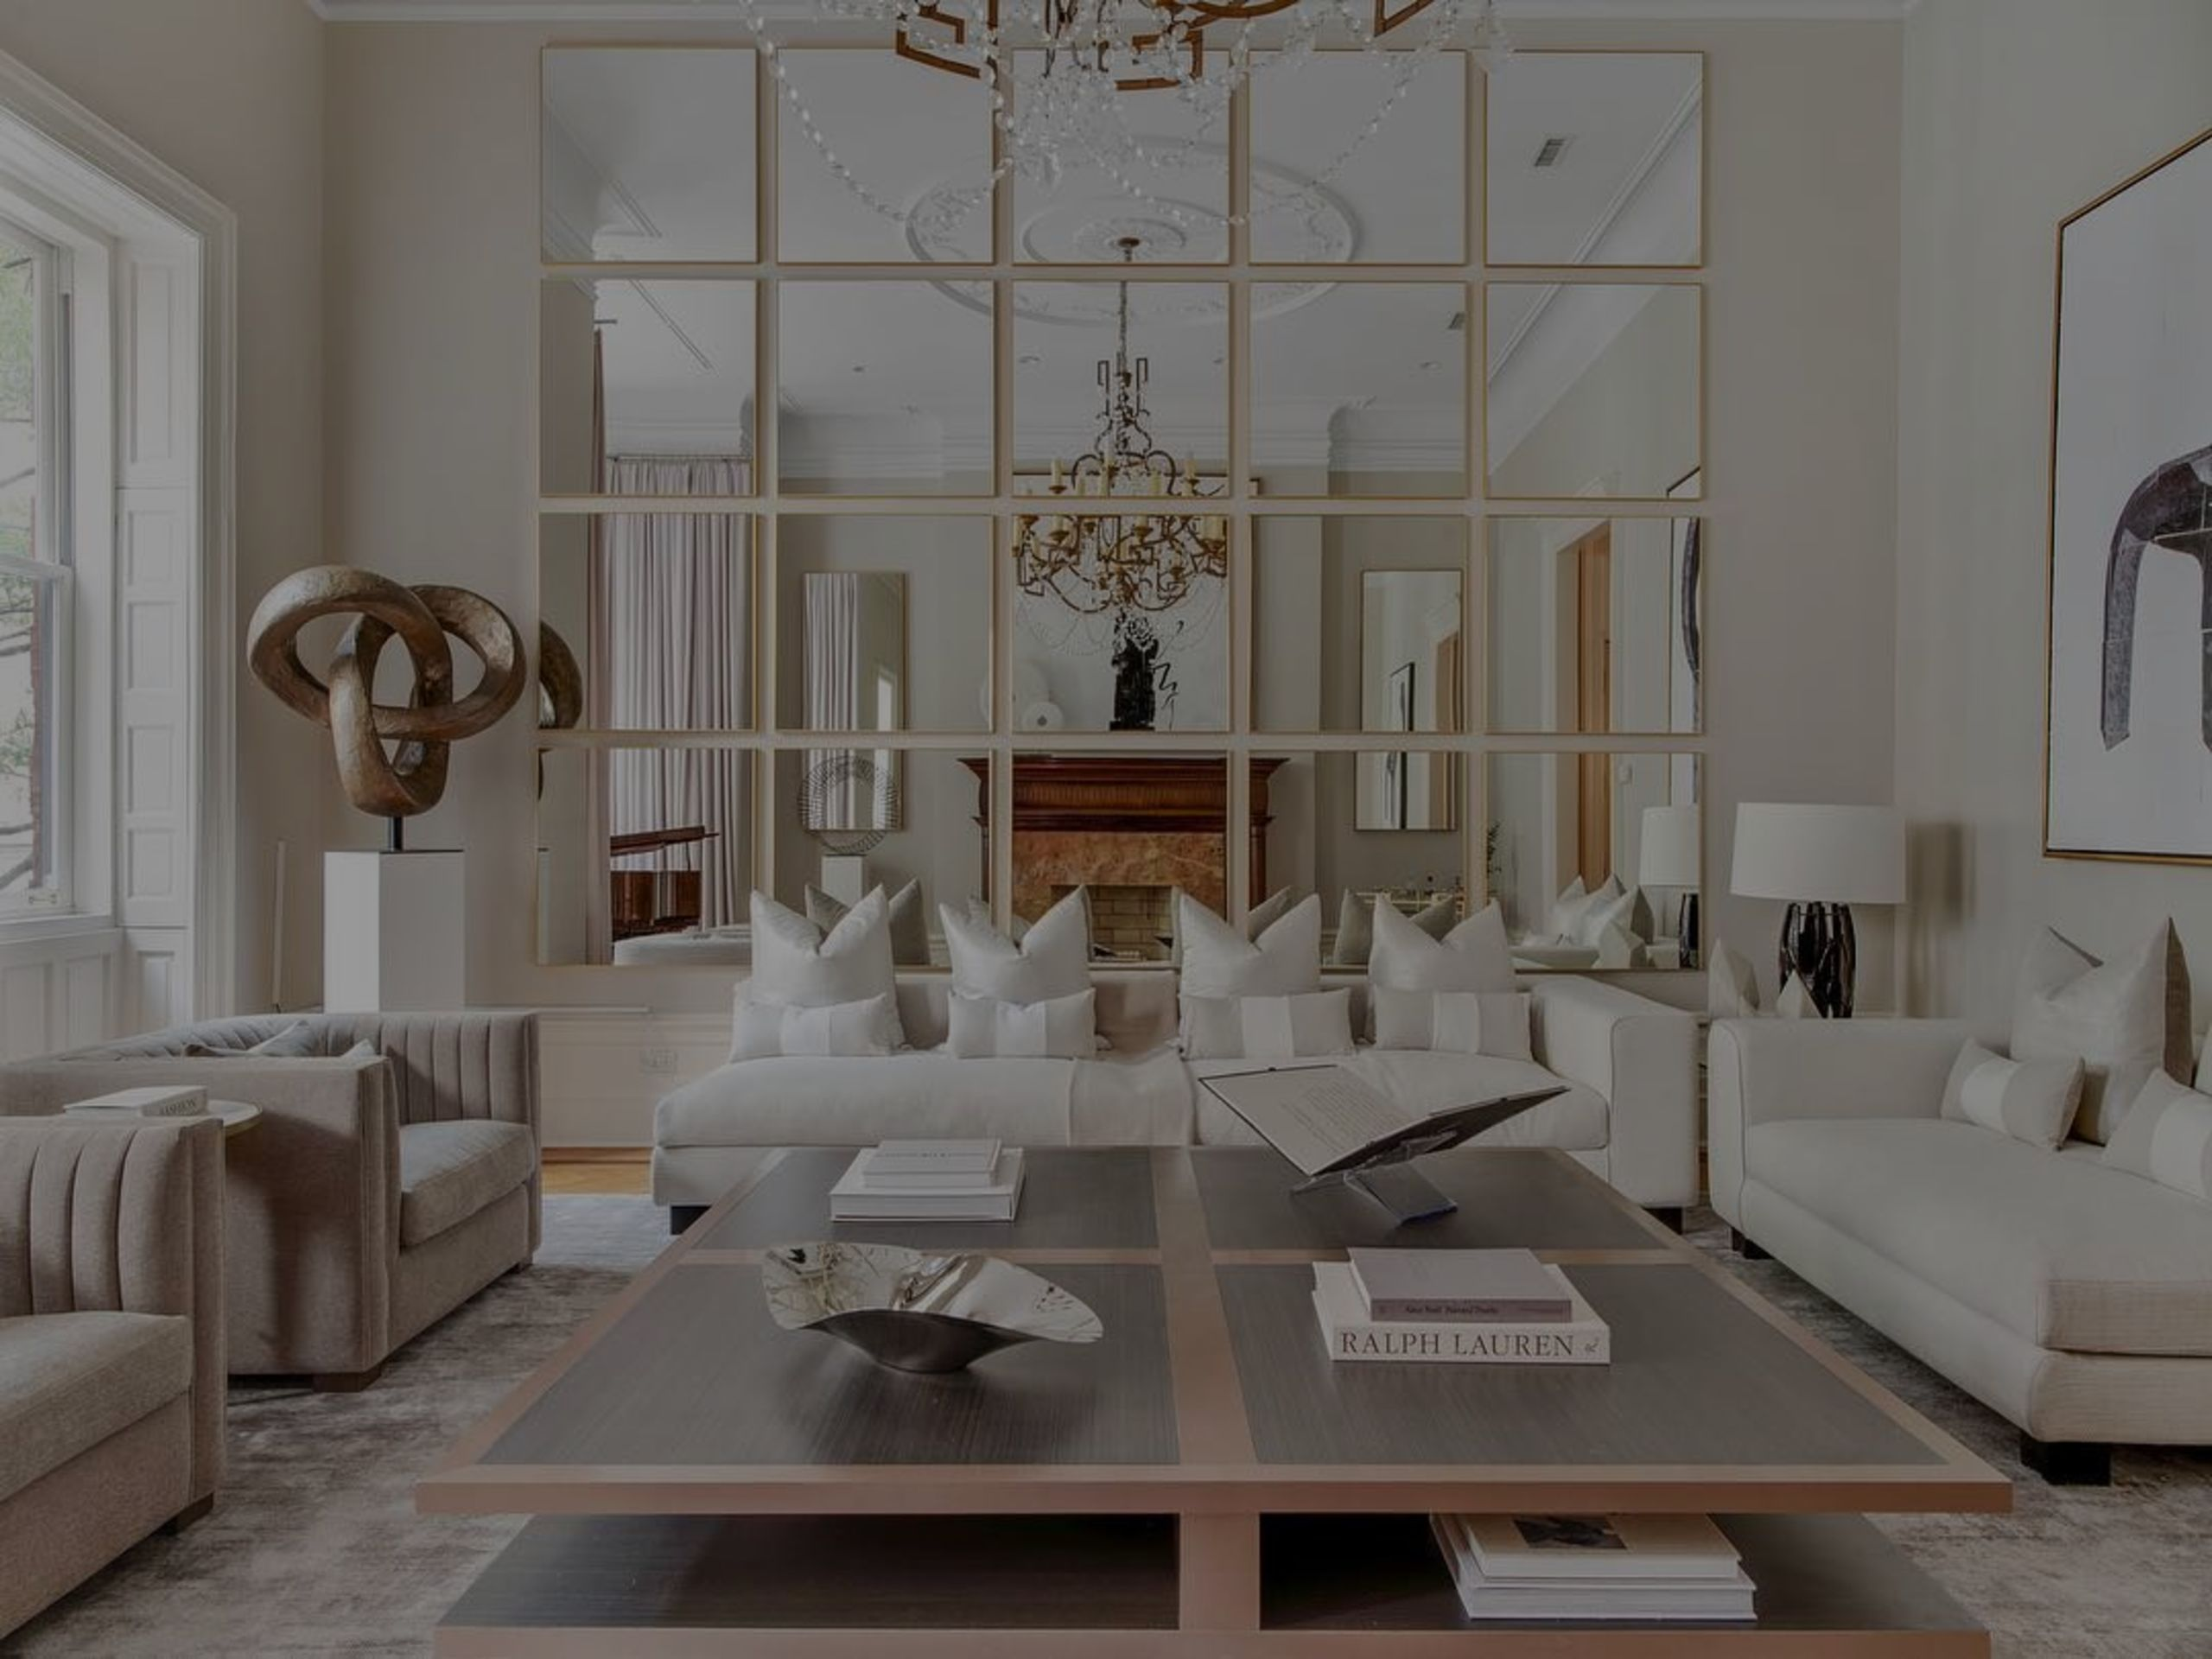 5 GOLDEN RULES OF HOMESTAGING ON A BUDGET